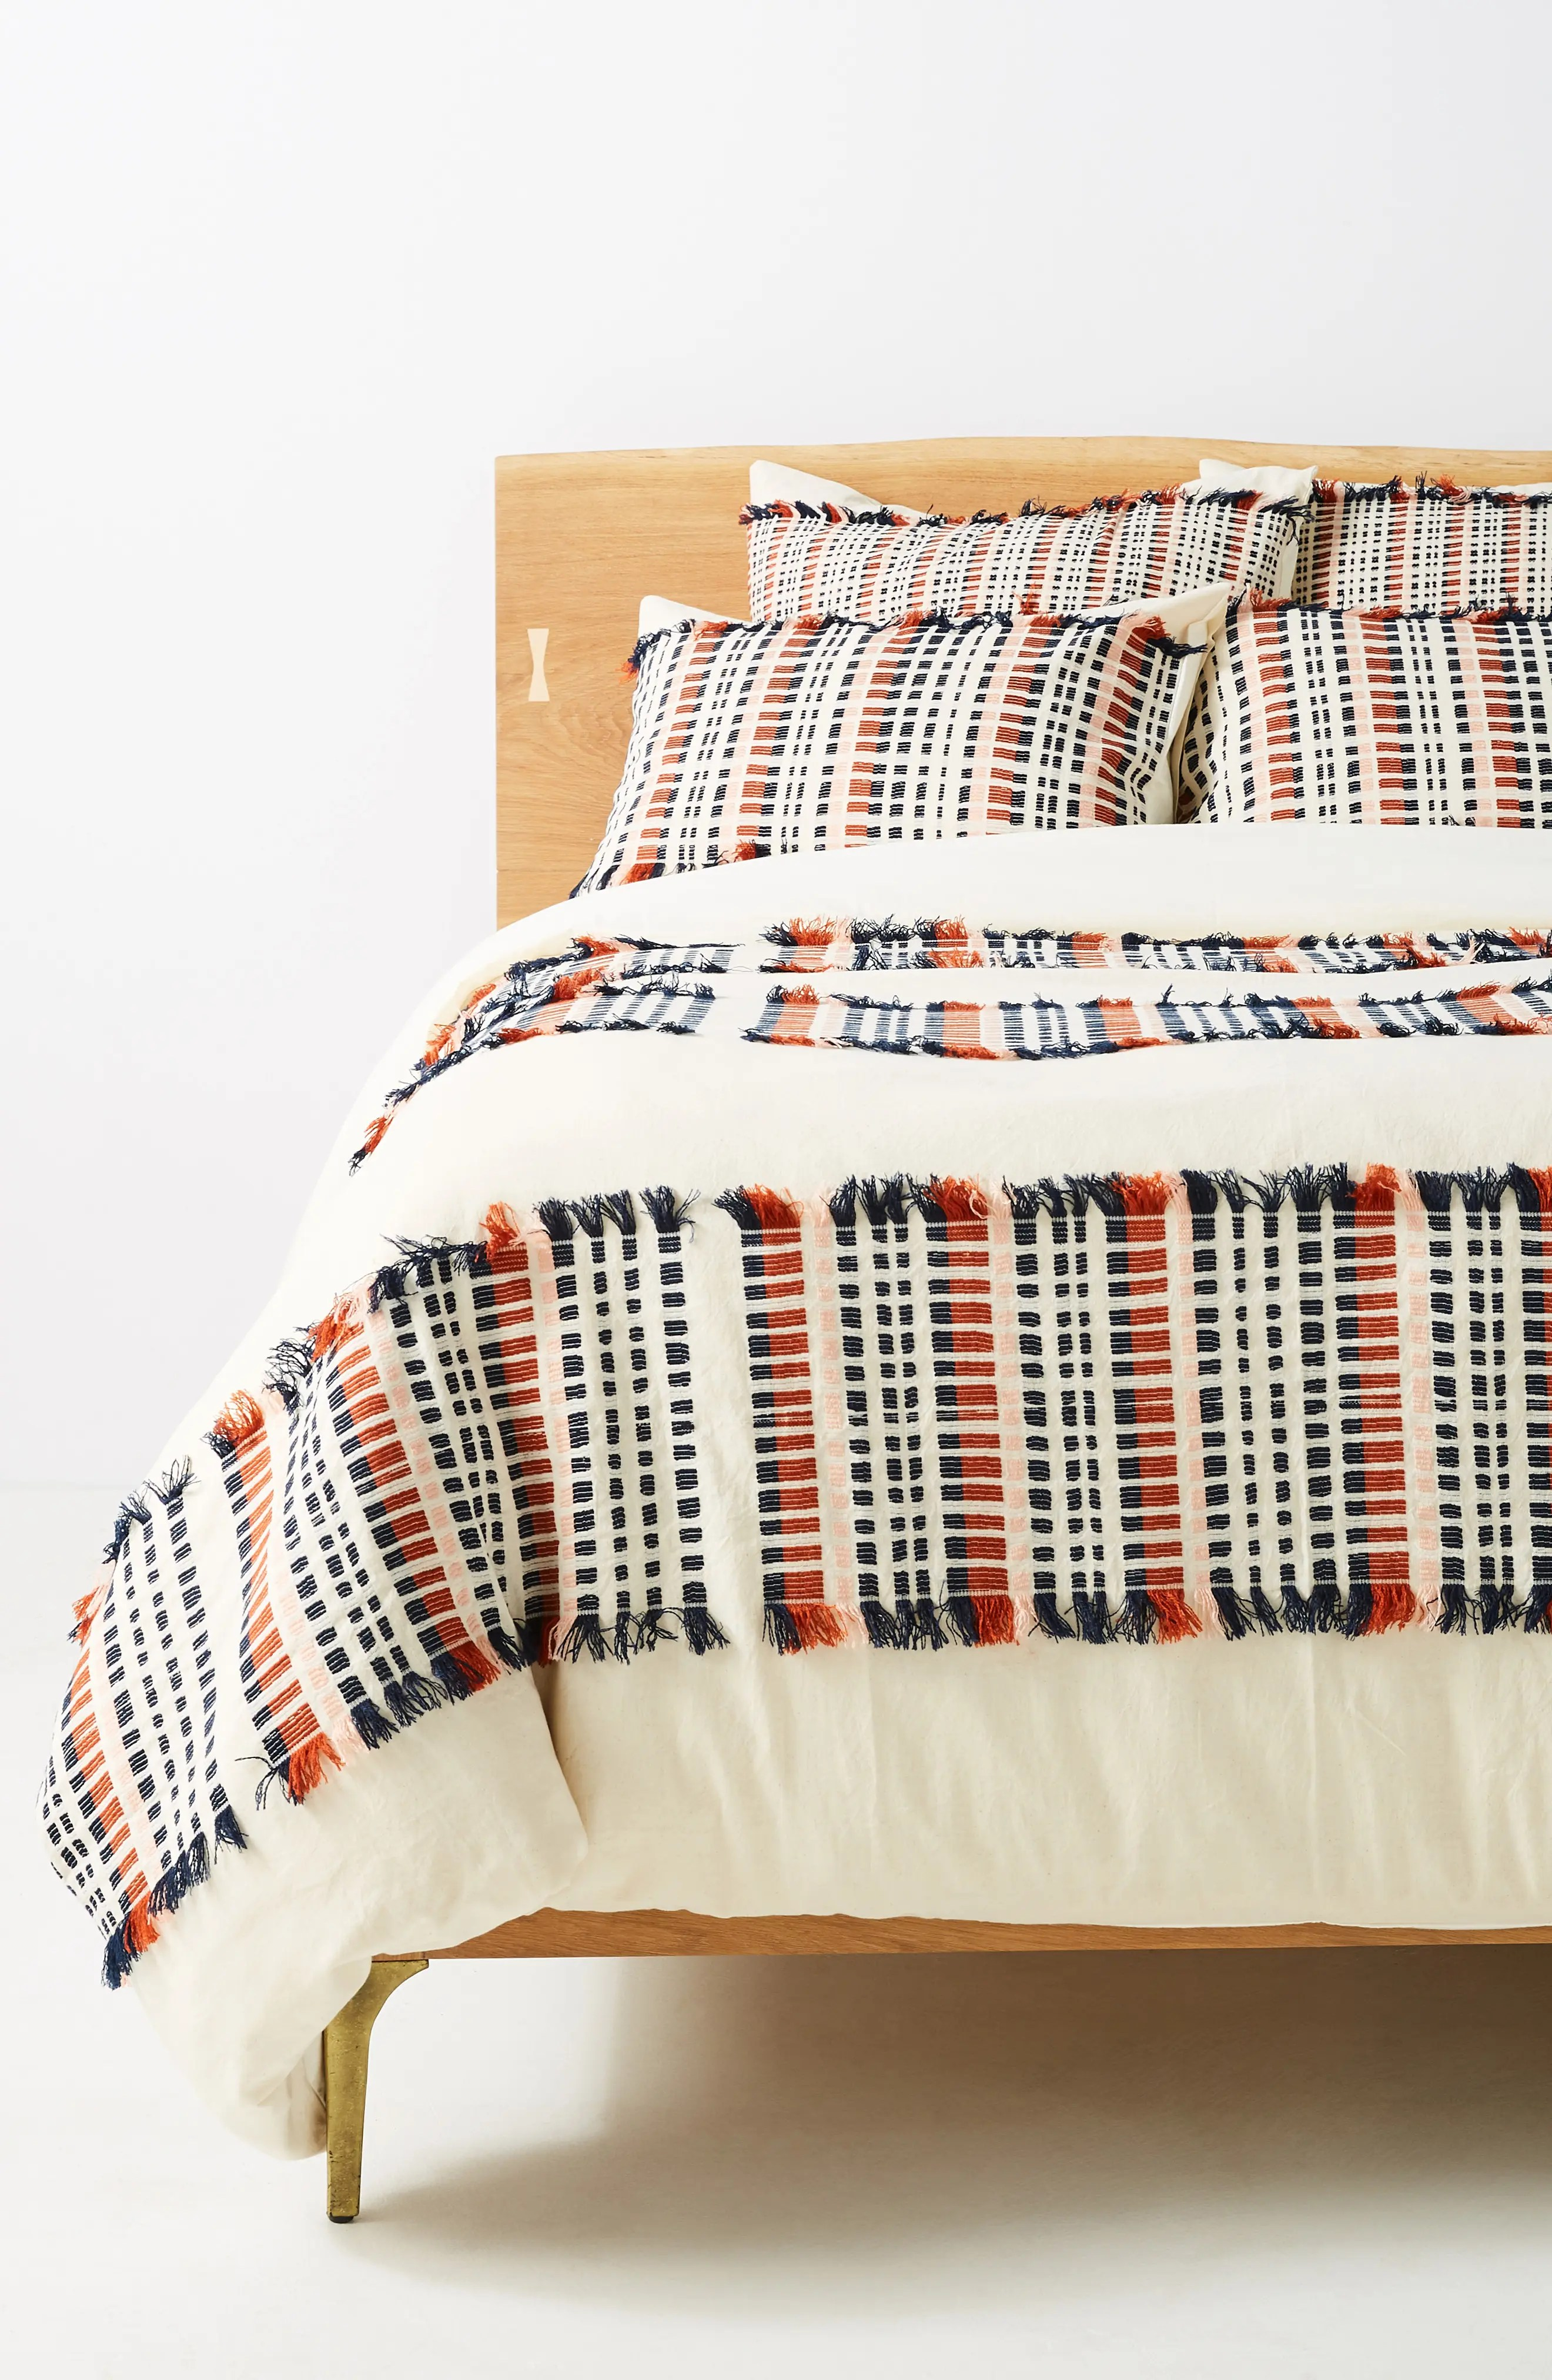 Buy Duvet Cover Anthropologie Duvets Duvet Covers Basics For Home Buy Best